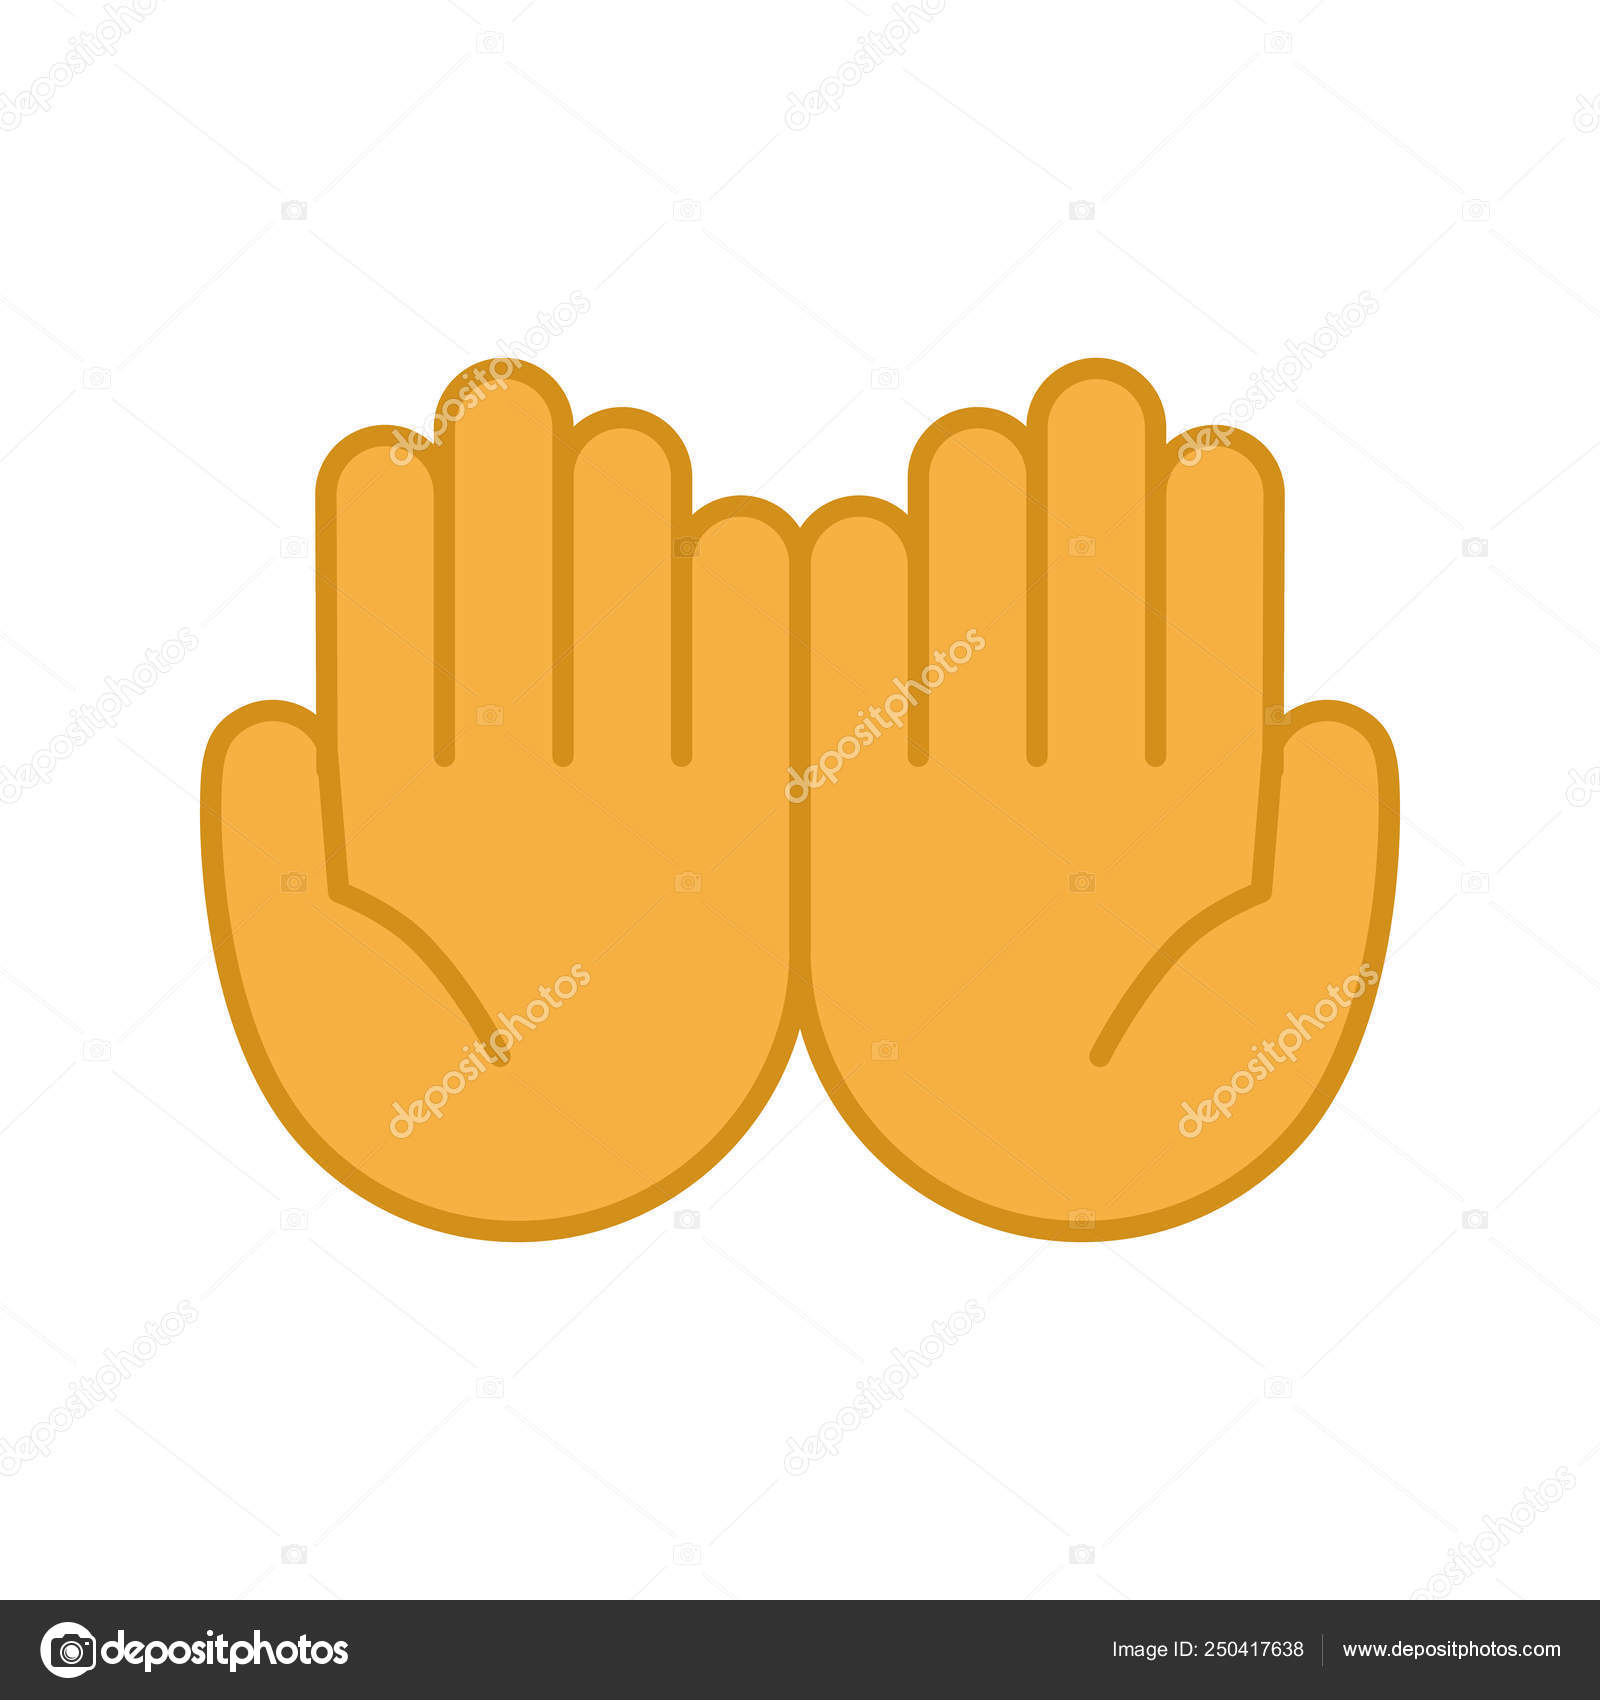 vector praying hands emoji cupped hands color icon palms together emoji begging gesturing islam stock vector c bsd 250417638 vector praying hands emoji cupped hands color icon palms together emoji begging gesturing islam stock vector c bsd 250417638